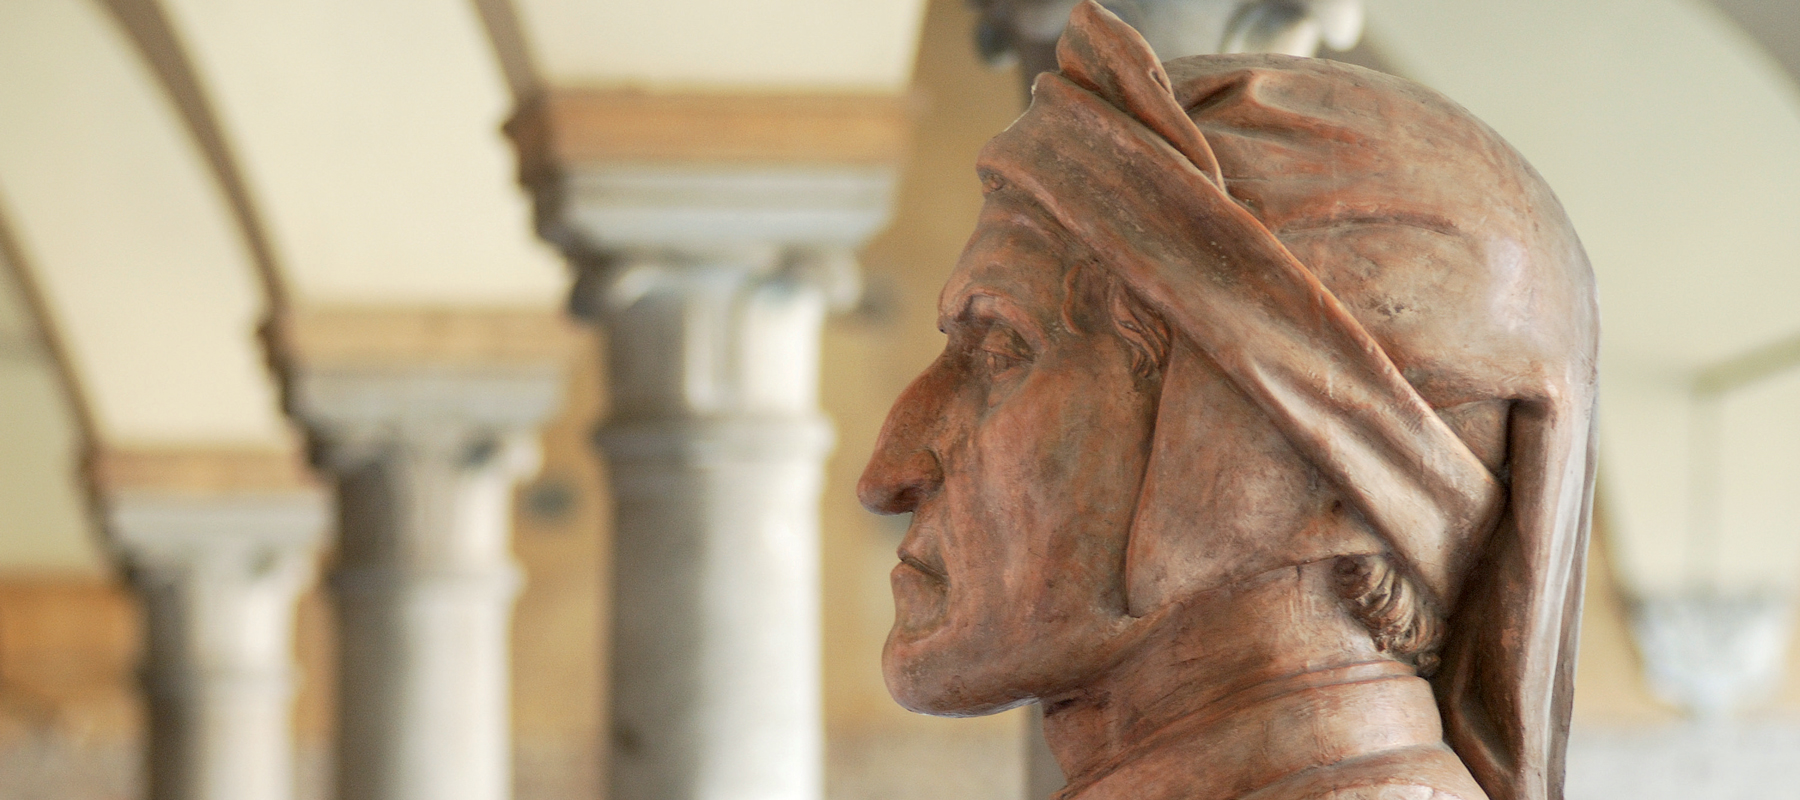 The mystery of Dante Alighieri's remains